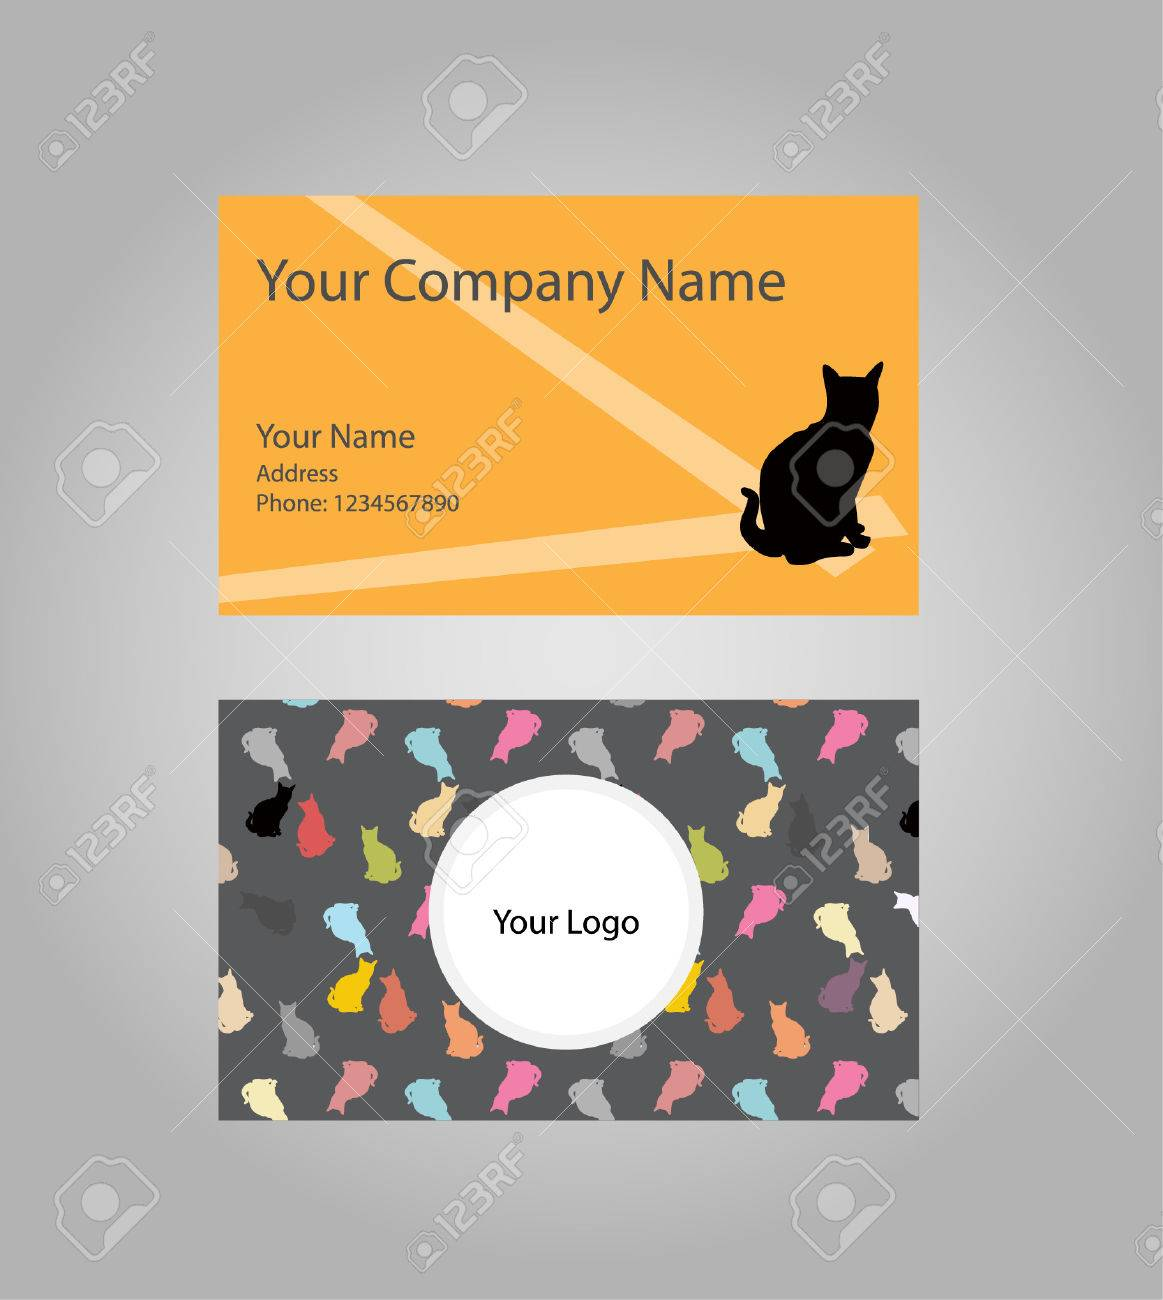 Cat Business Card Royalty Free Cliparts, Vectors, And Stock ...